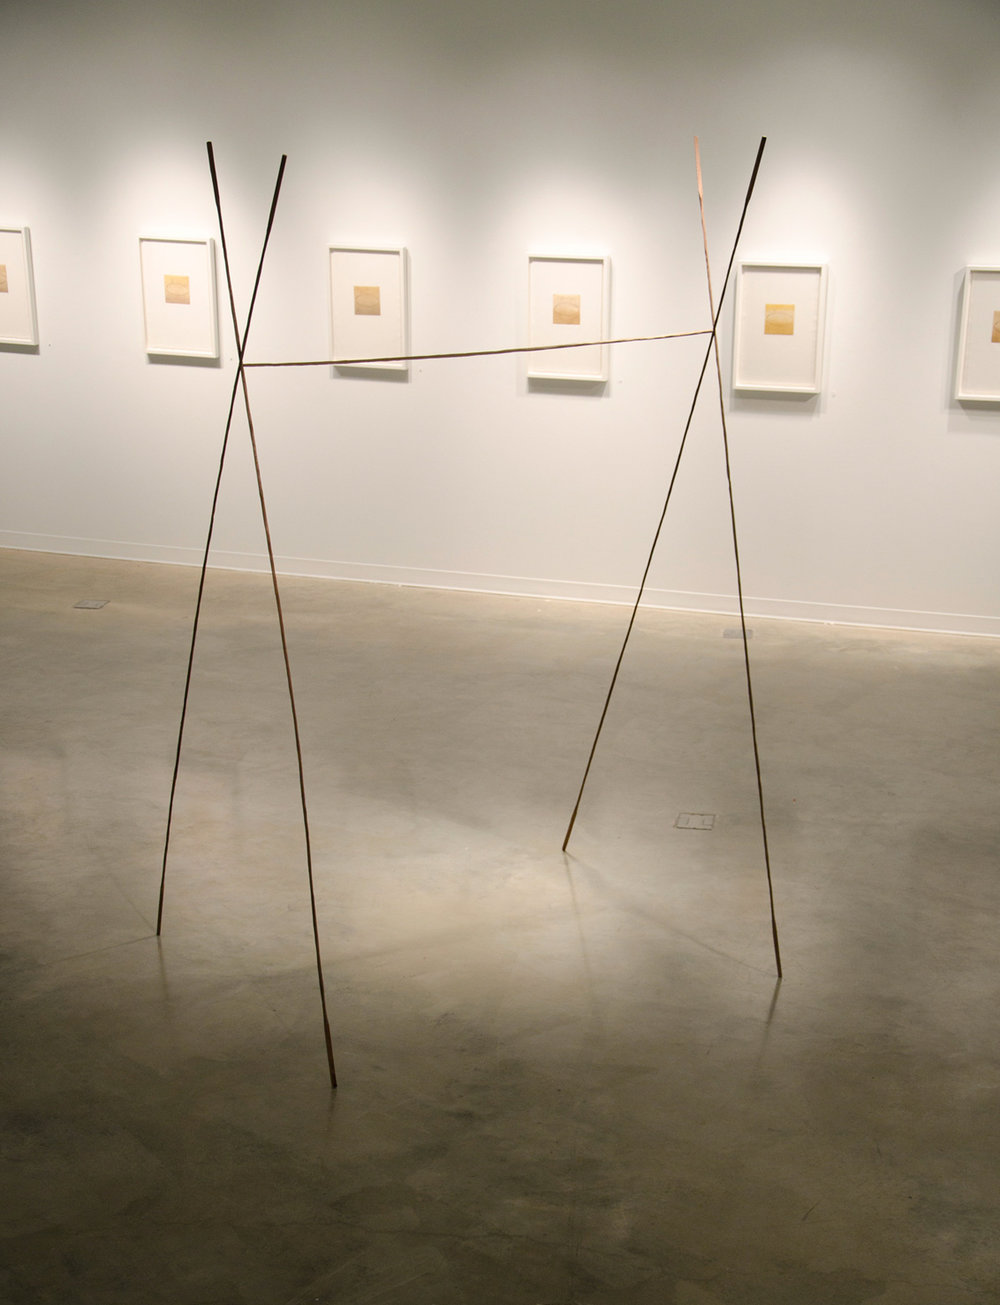 Cut , 2014, wood, 64 x 54 x 105 in. Pictured at George Mason University, Fairfax, VA(photo: Stephanie Booth)